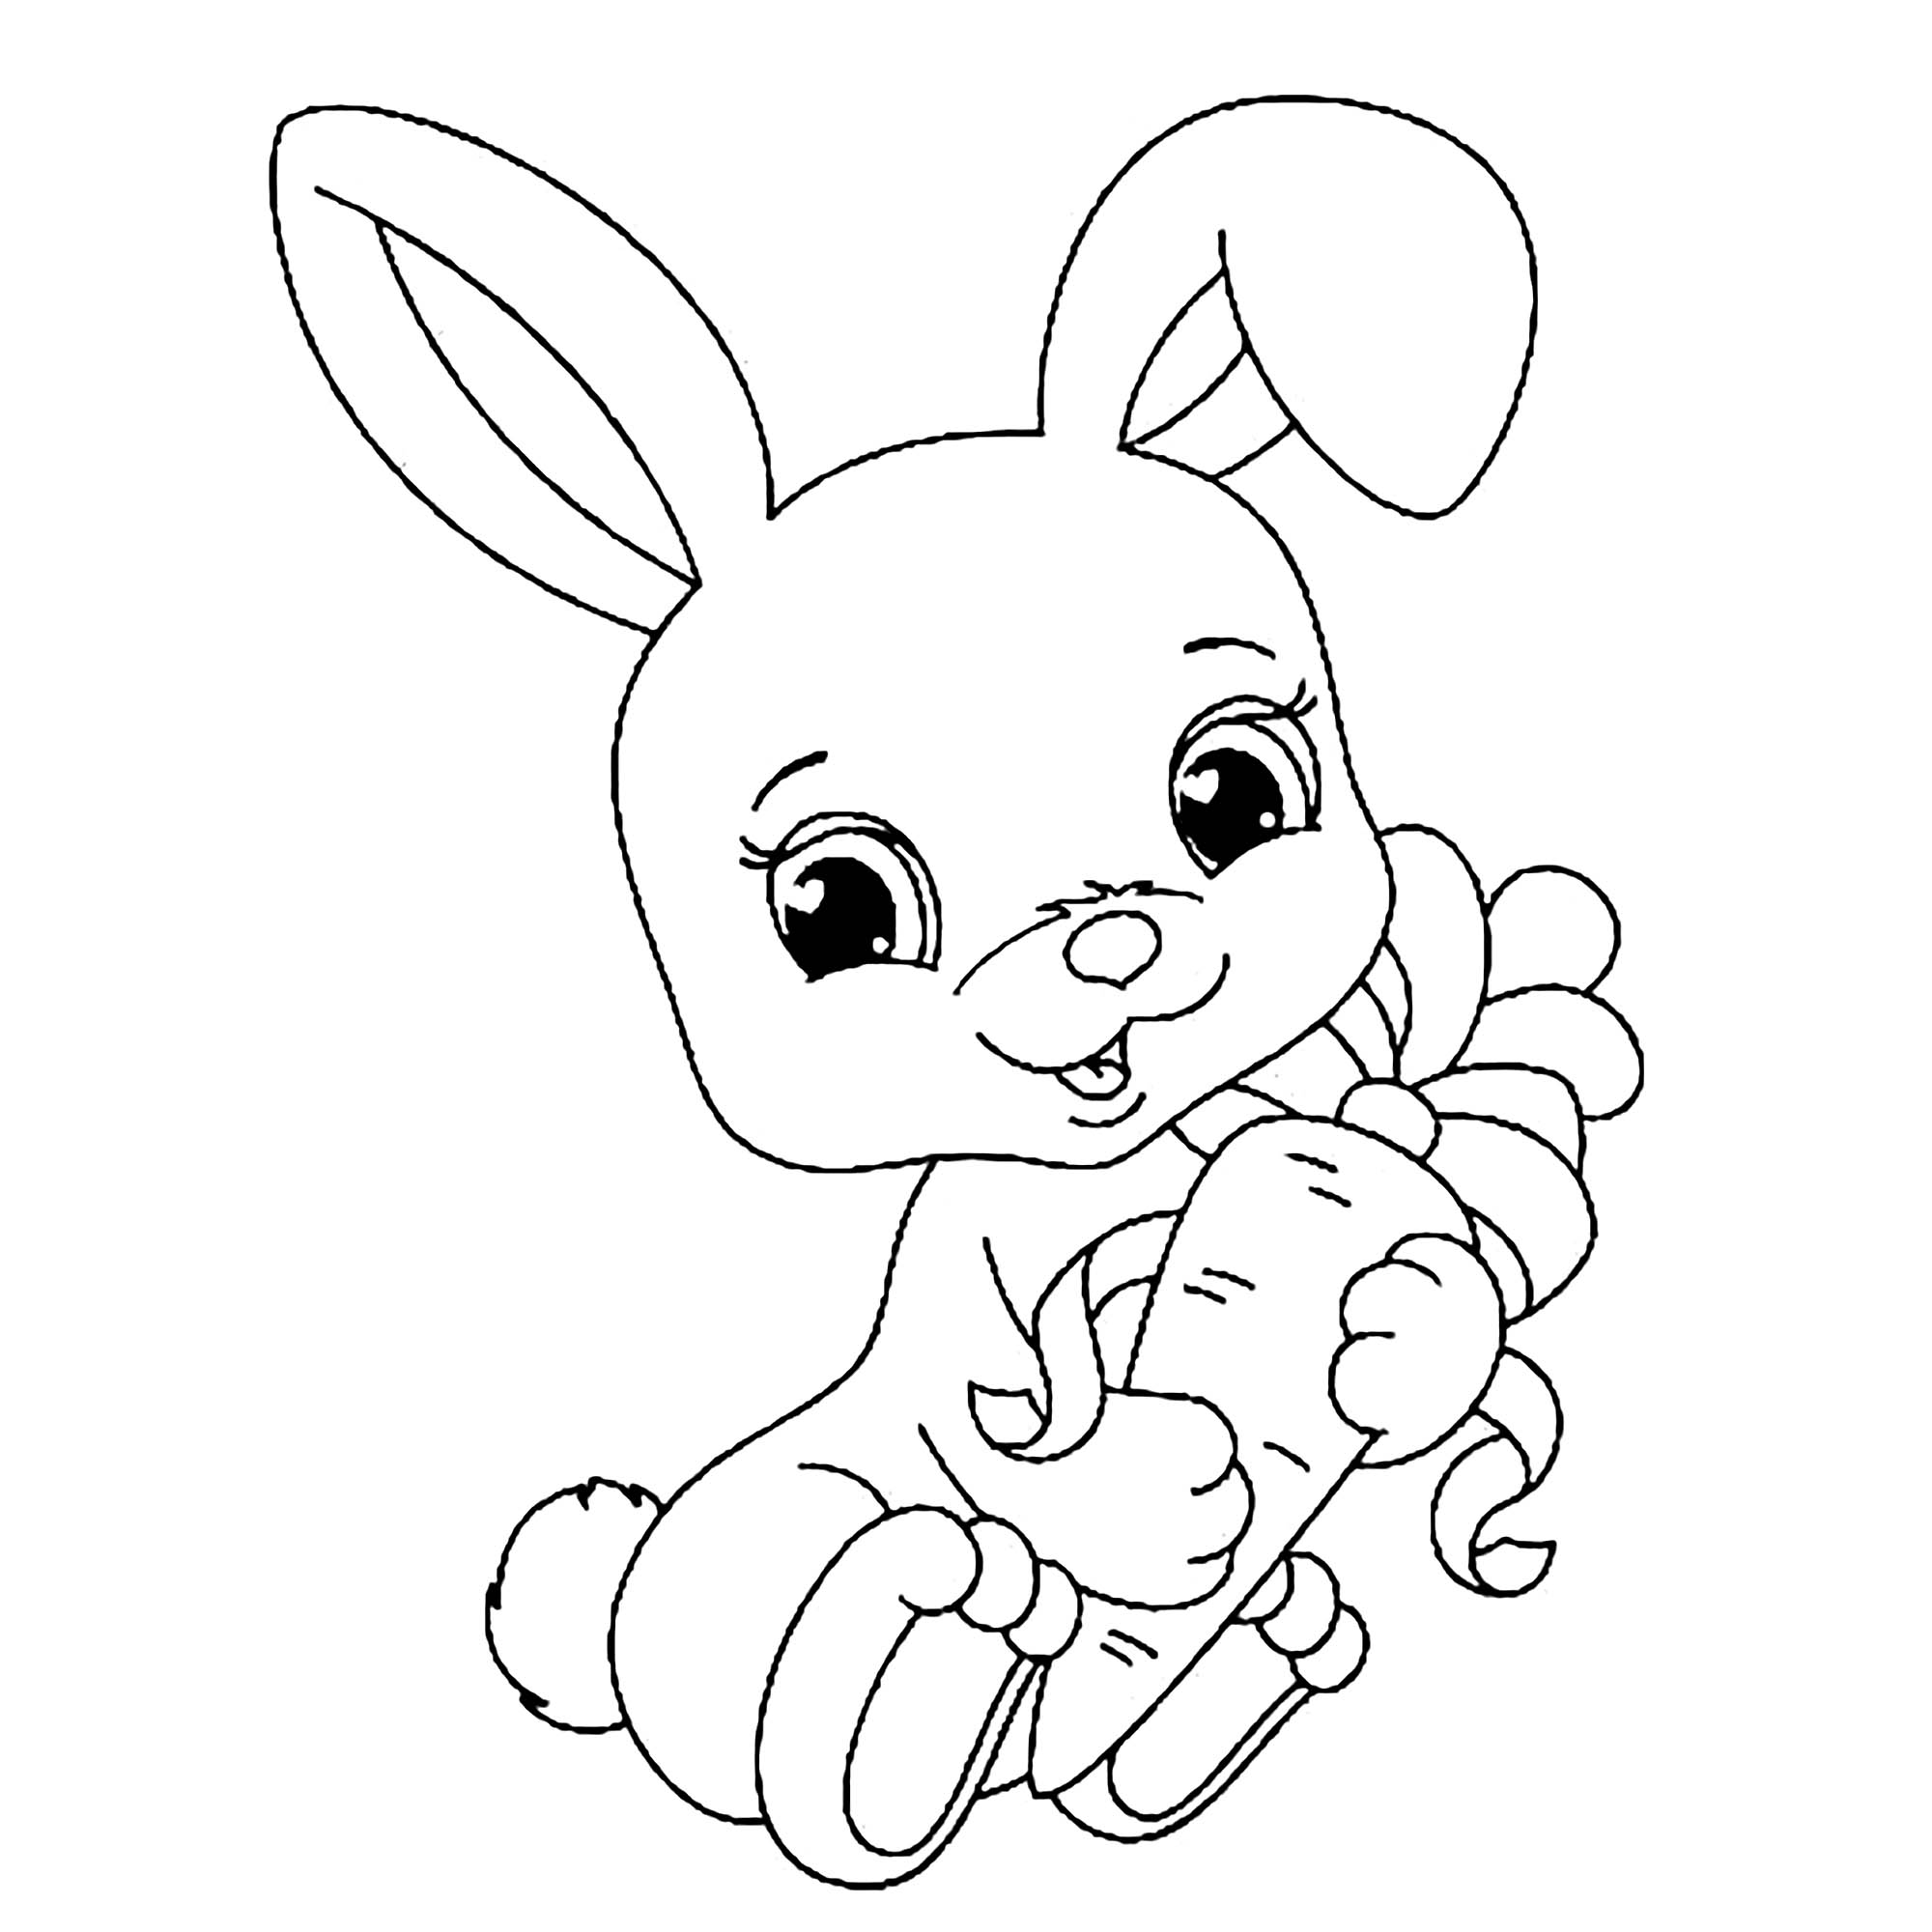 bunny color sheet bunny rabbit coloring pages to download and print for free color sheet bunny